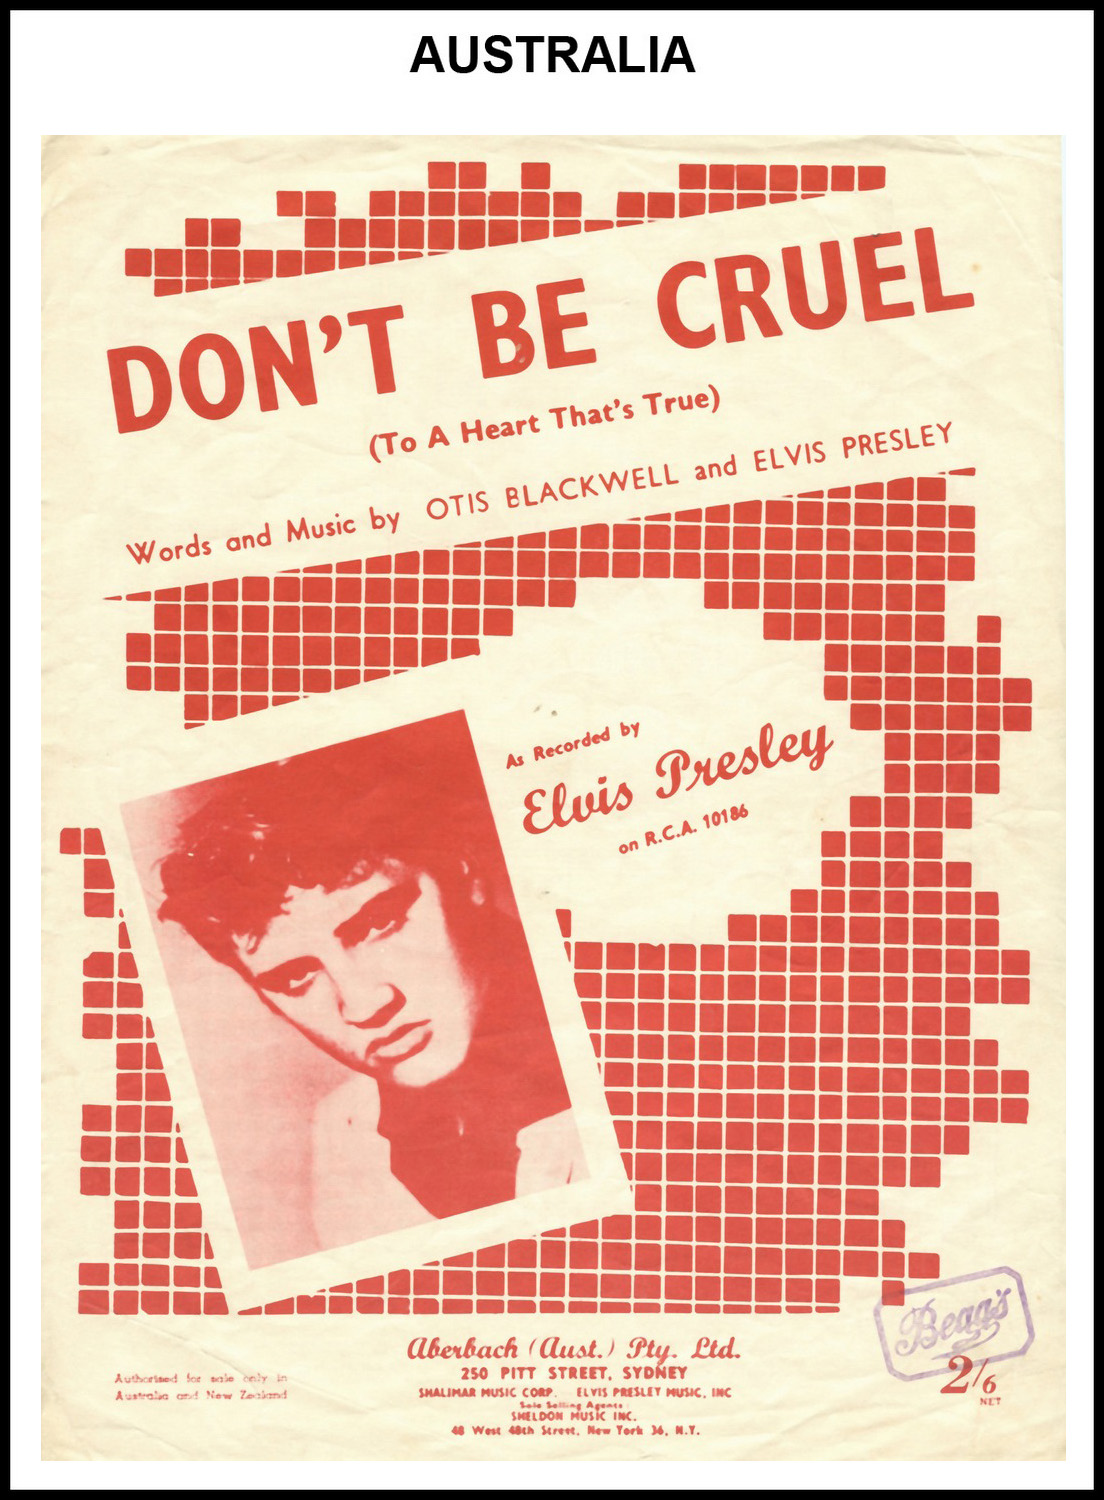 1956 - Don't Be Cruel (Australia) (CHRIS GILES COLLECTION)